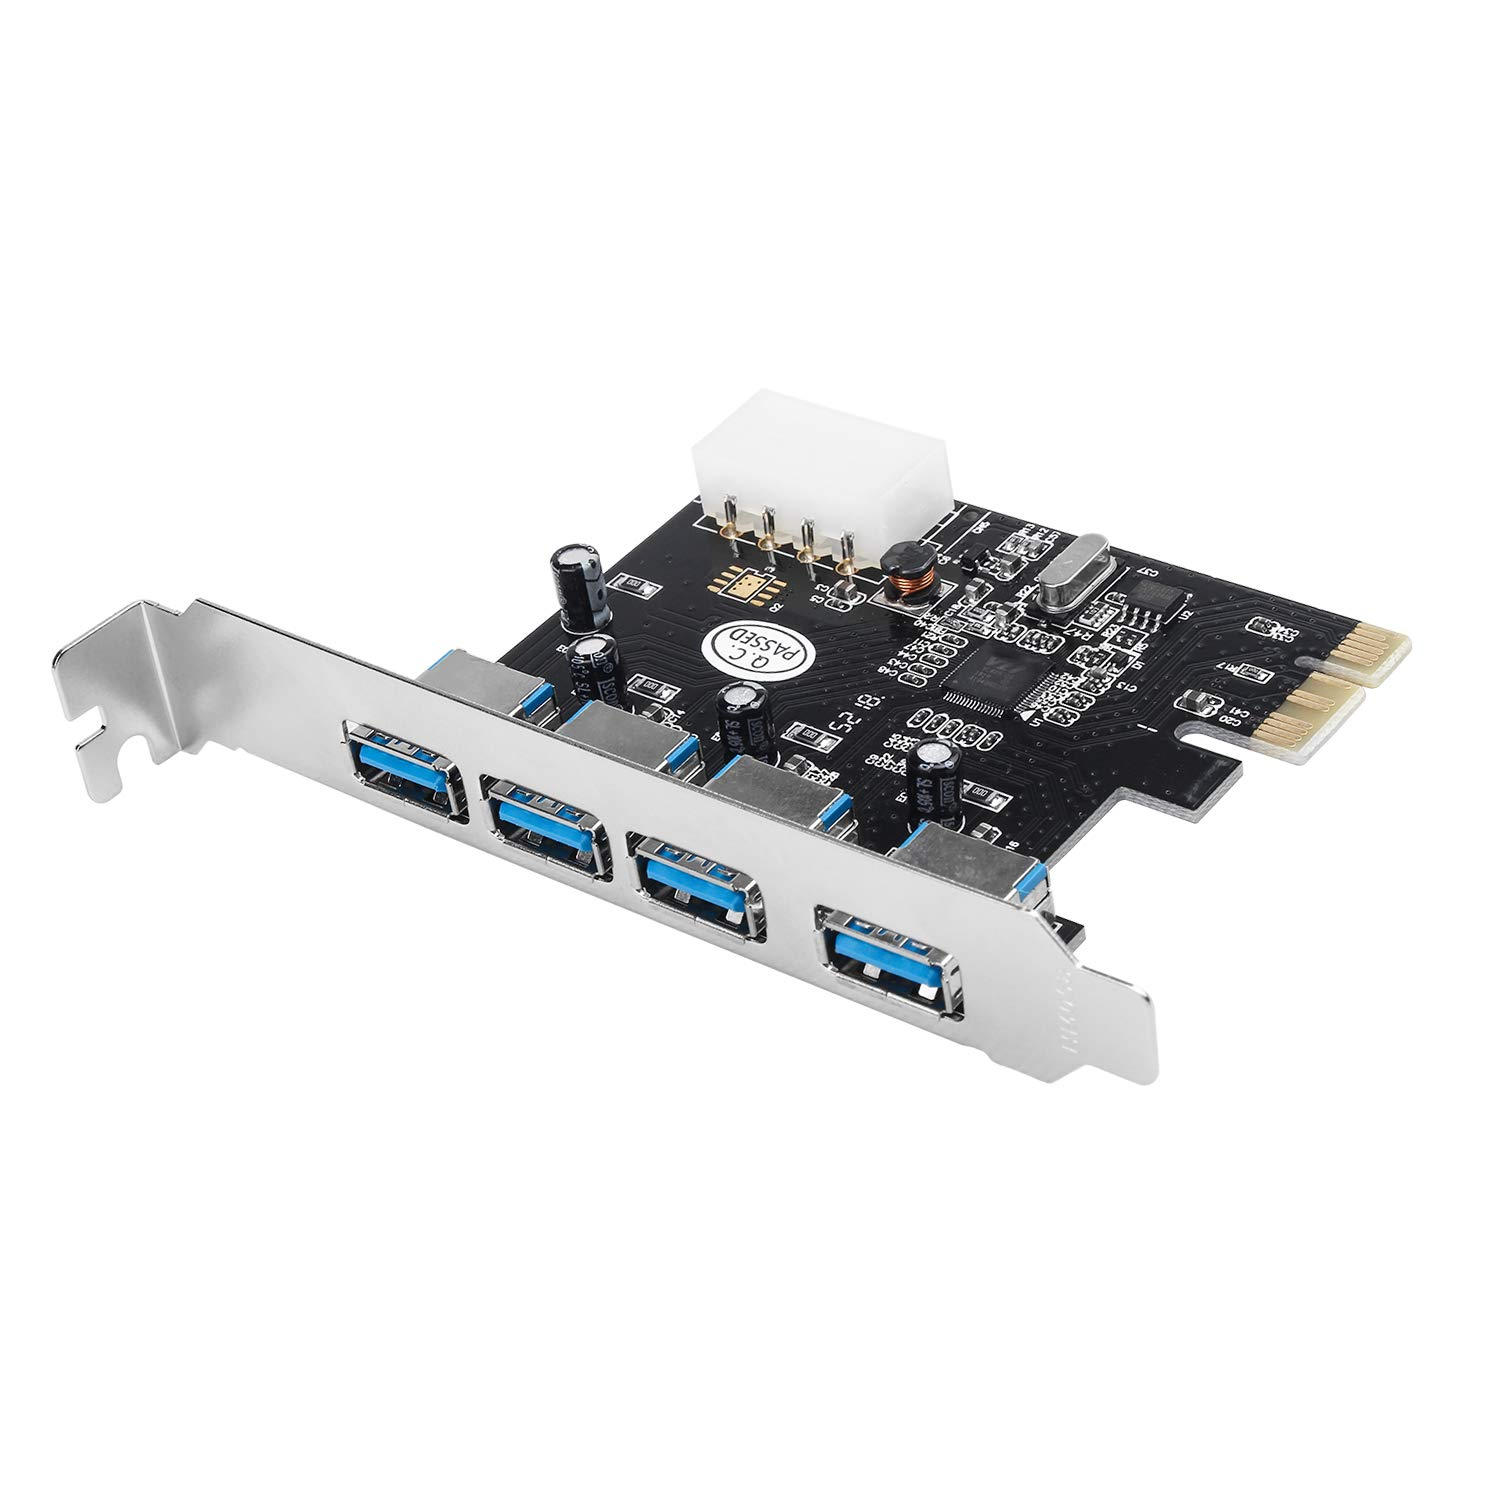 Semlos 4 Port USB 3.0 to PCI Express Card Expansion Card PCI-E to USB 3.0 Hub Controller Adapter